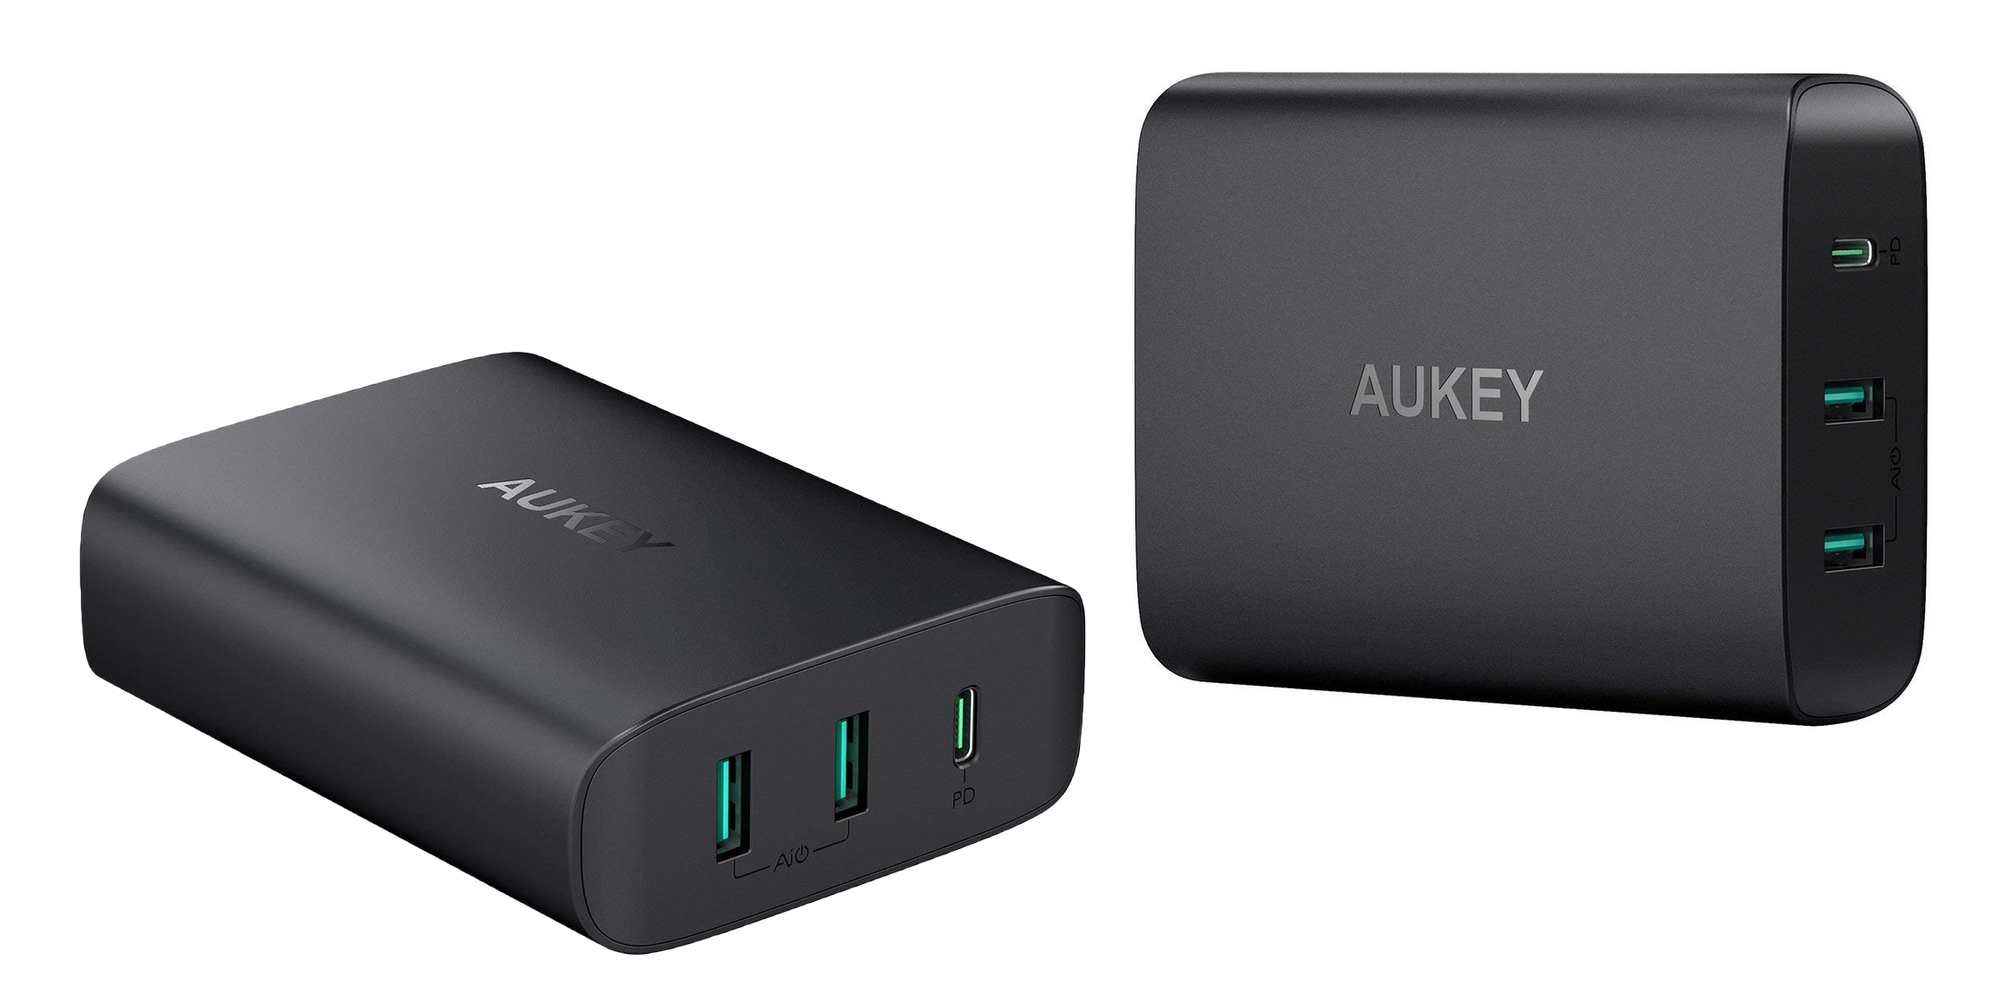 Smartphone Accessories: Aukey 60W USB-C Wall Charger w/ Dual USB ports $36, more